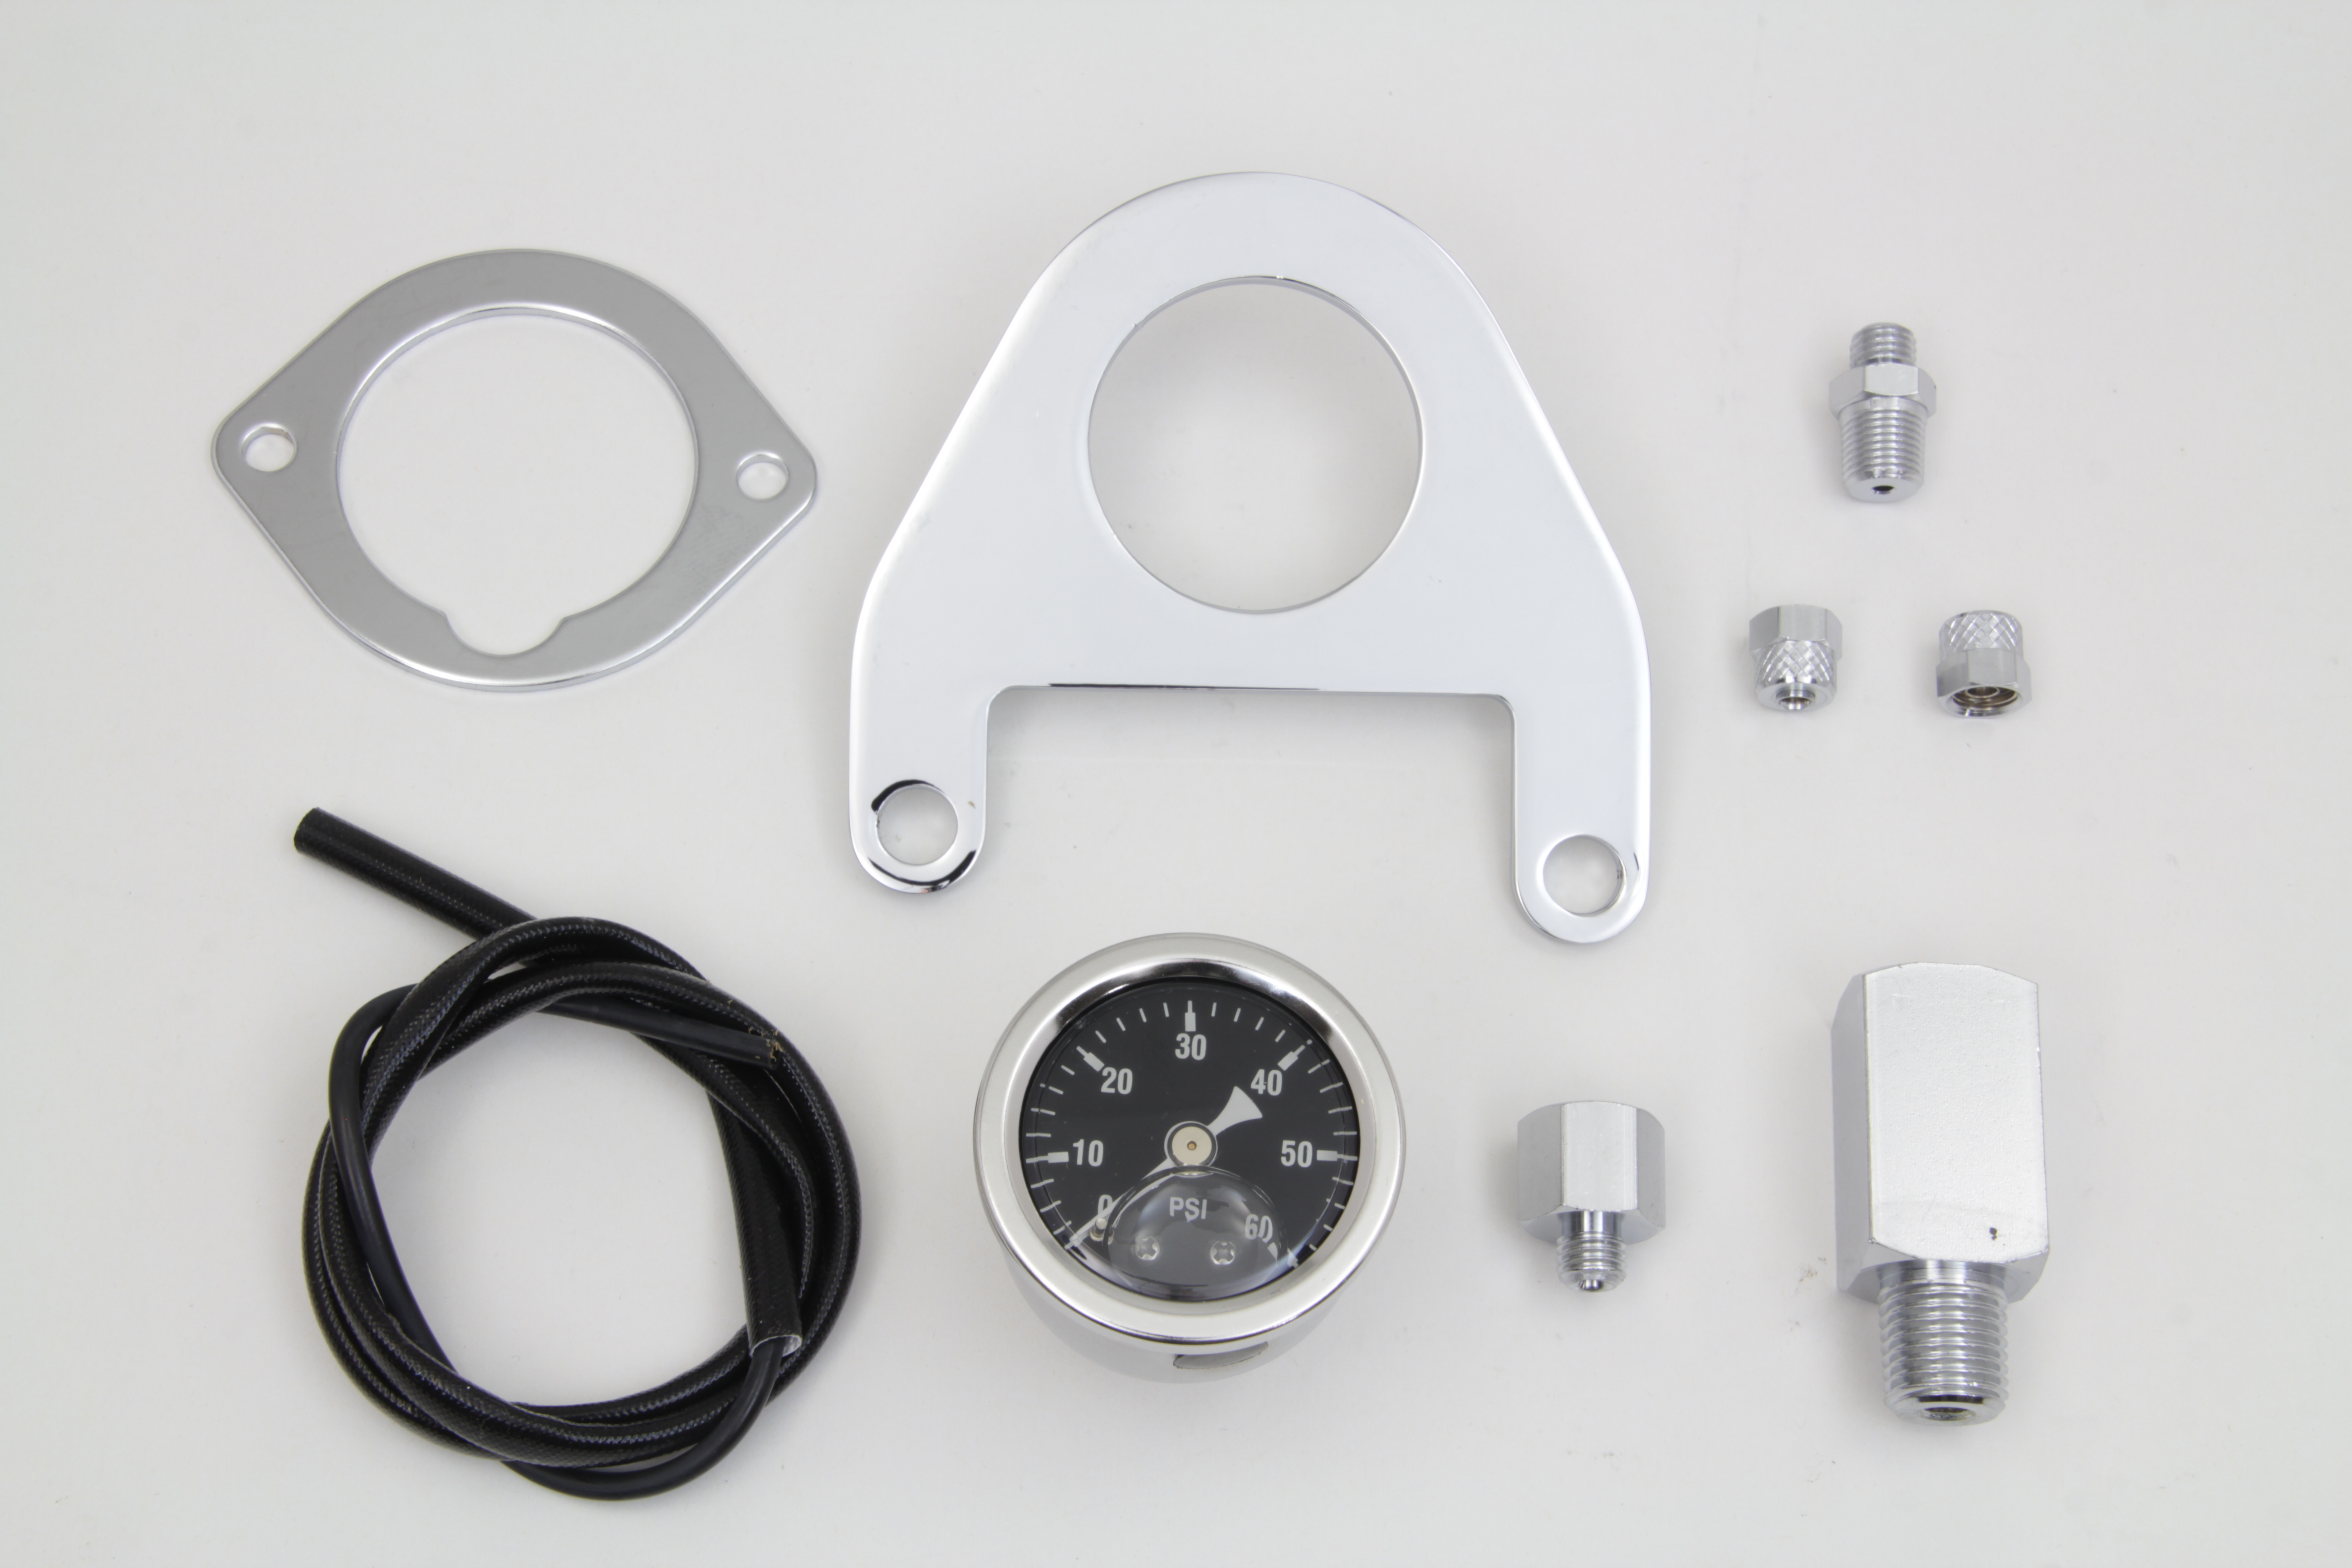 FXST 1999-UP Oil Pressure Gauge Mount Kit